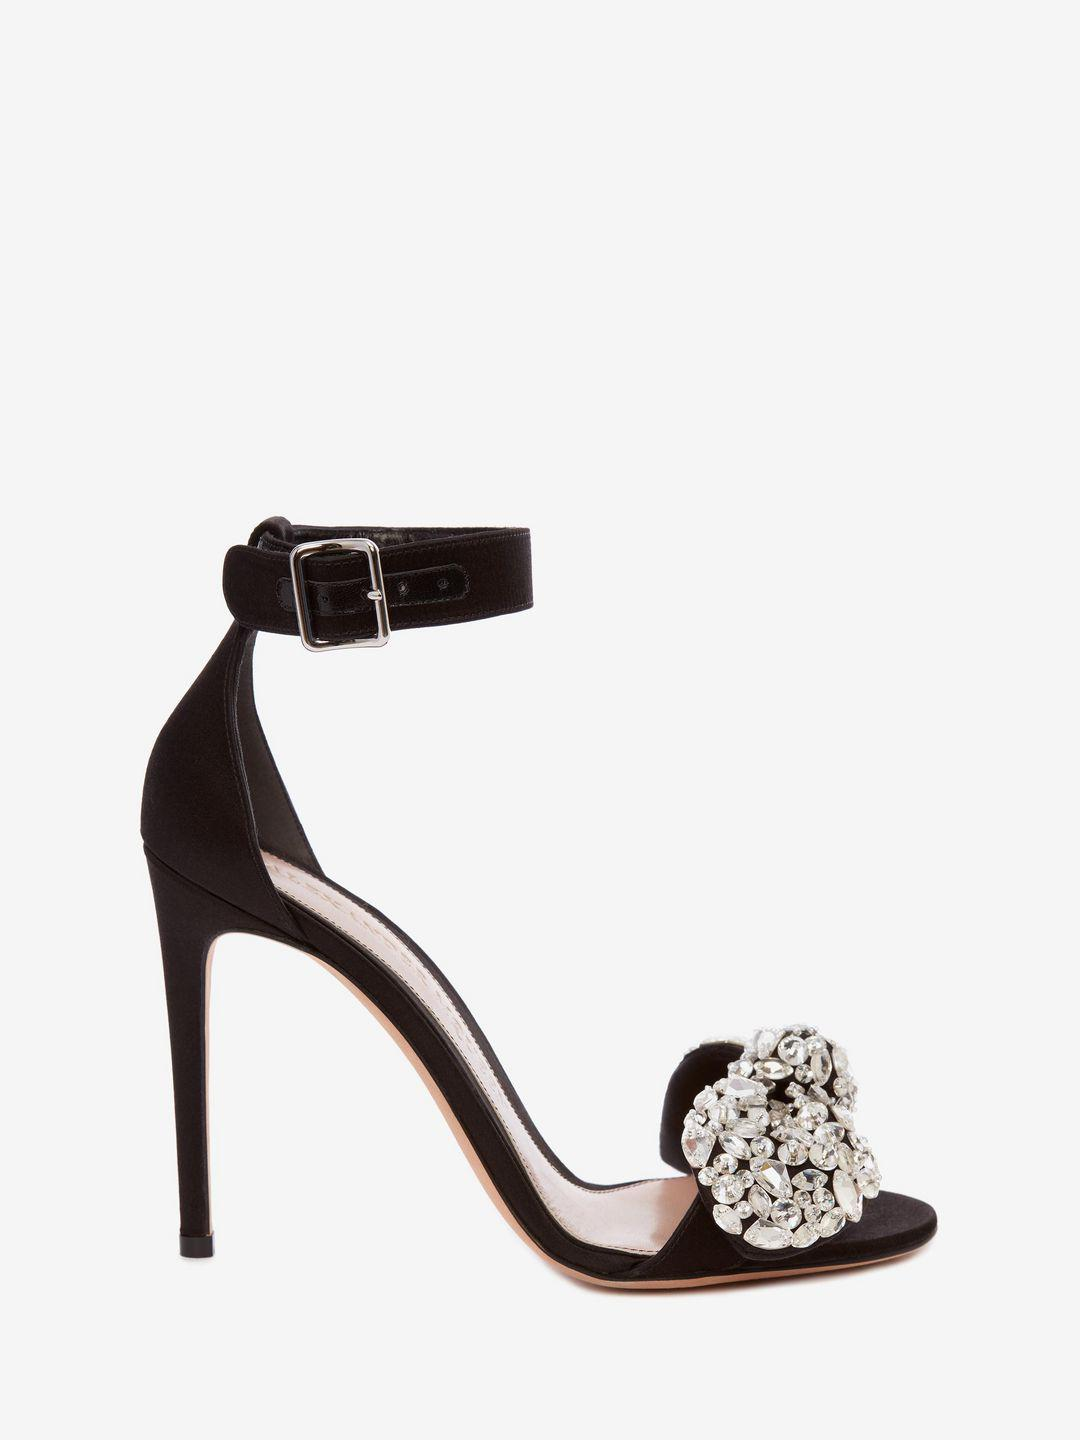 97e57c9f21b Lyst - Alexander McQueen Bow Embroidered Sandal in Black